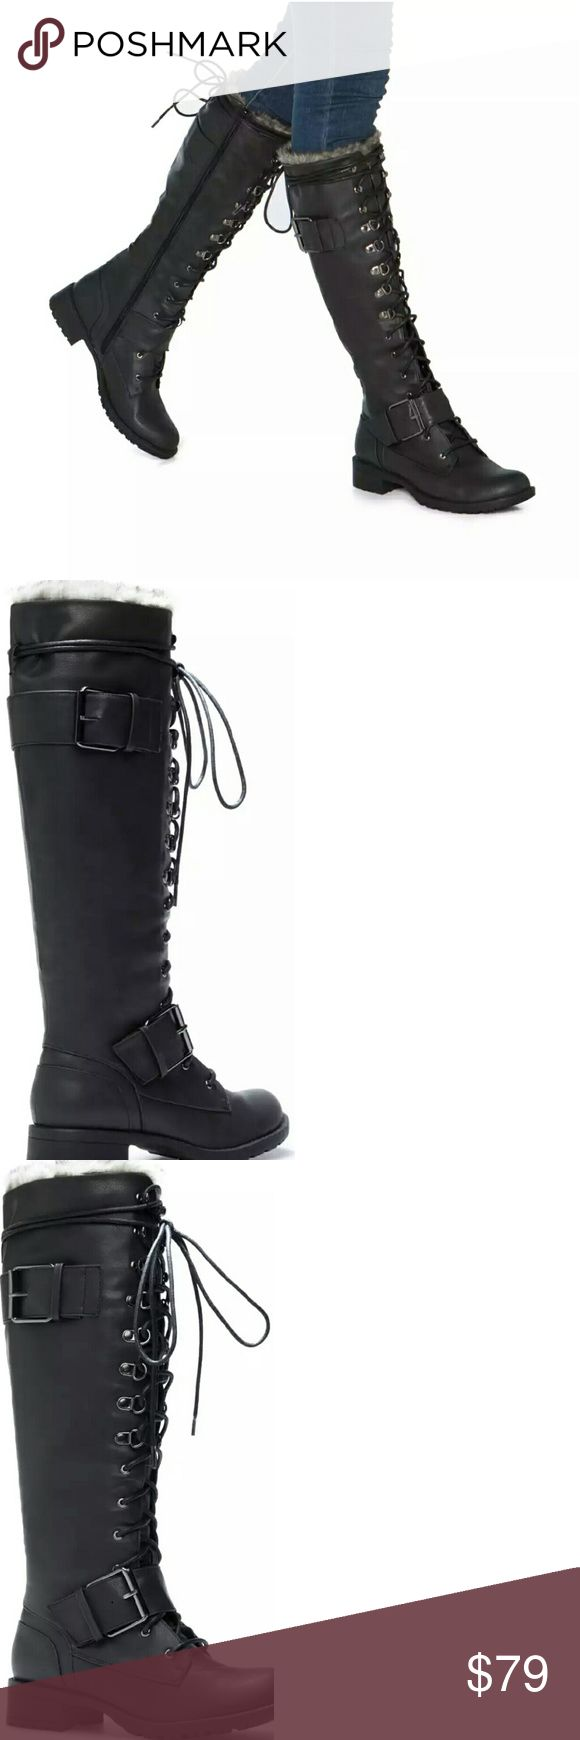 """Shoedazzle boots, Mariya boots, NWT SHOEDAZZLE Mariya black boots, faux leather, heel height 1.50"""", has inner zipper, and adjustable laces. Front laces, buckles, and faux fur. Very comfortable. Never used, brand new. Shoe Dazzle Shoes Lace Up Boots"""